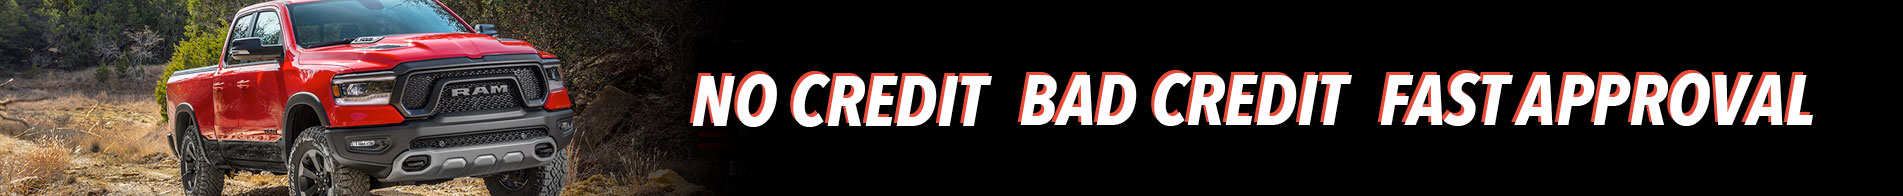 Bad Credit No Credit Fast Approval Banner